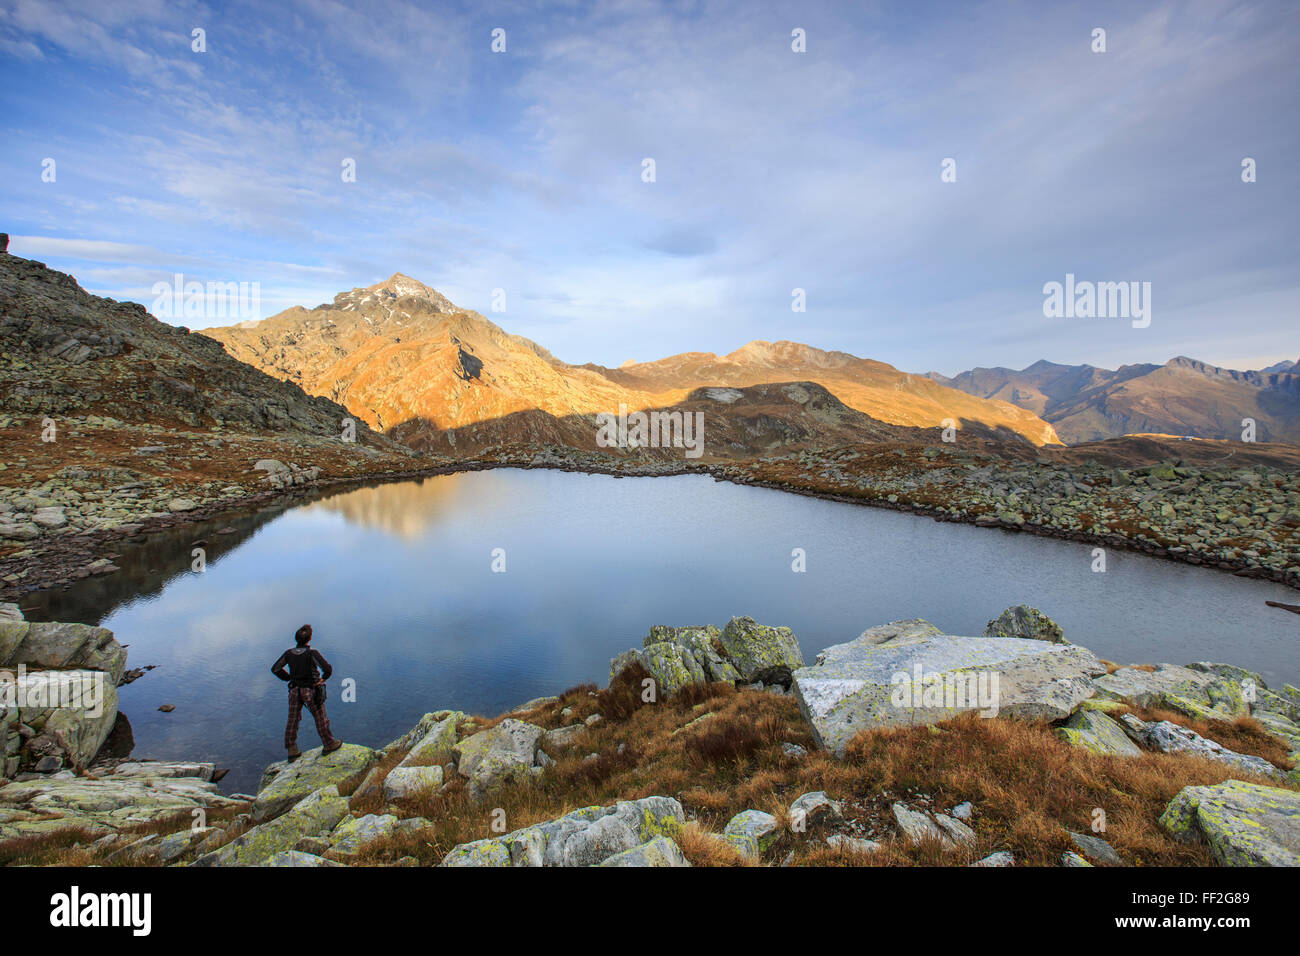 Hiker admires RMake Bergsee at sunrise, Chiavenna VaRMRMe, SpRMuga VaRMRMey, SwitzerRMand, Europe - Stock Image